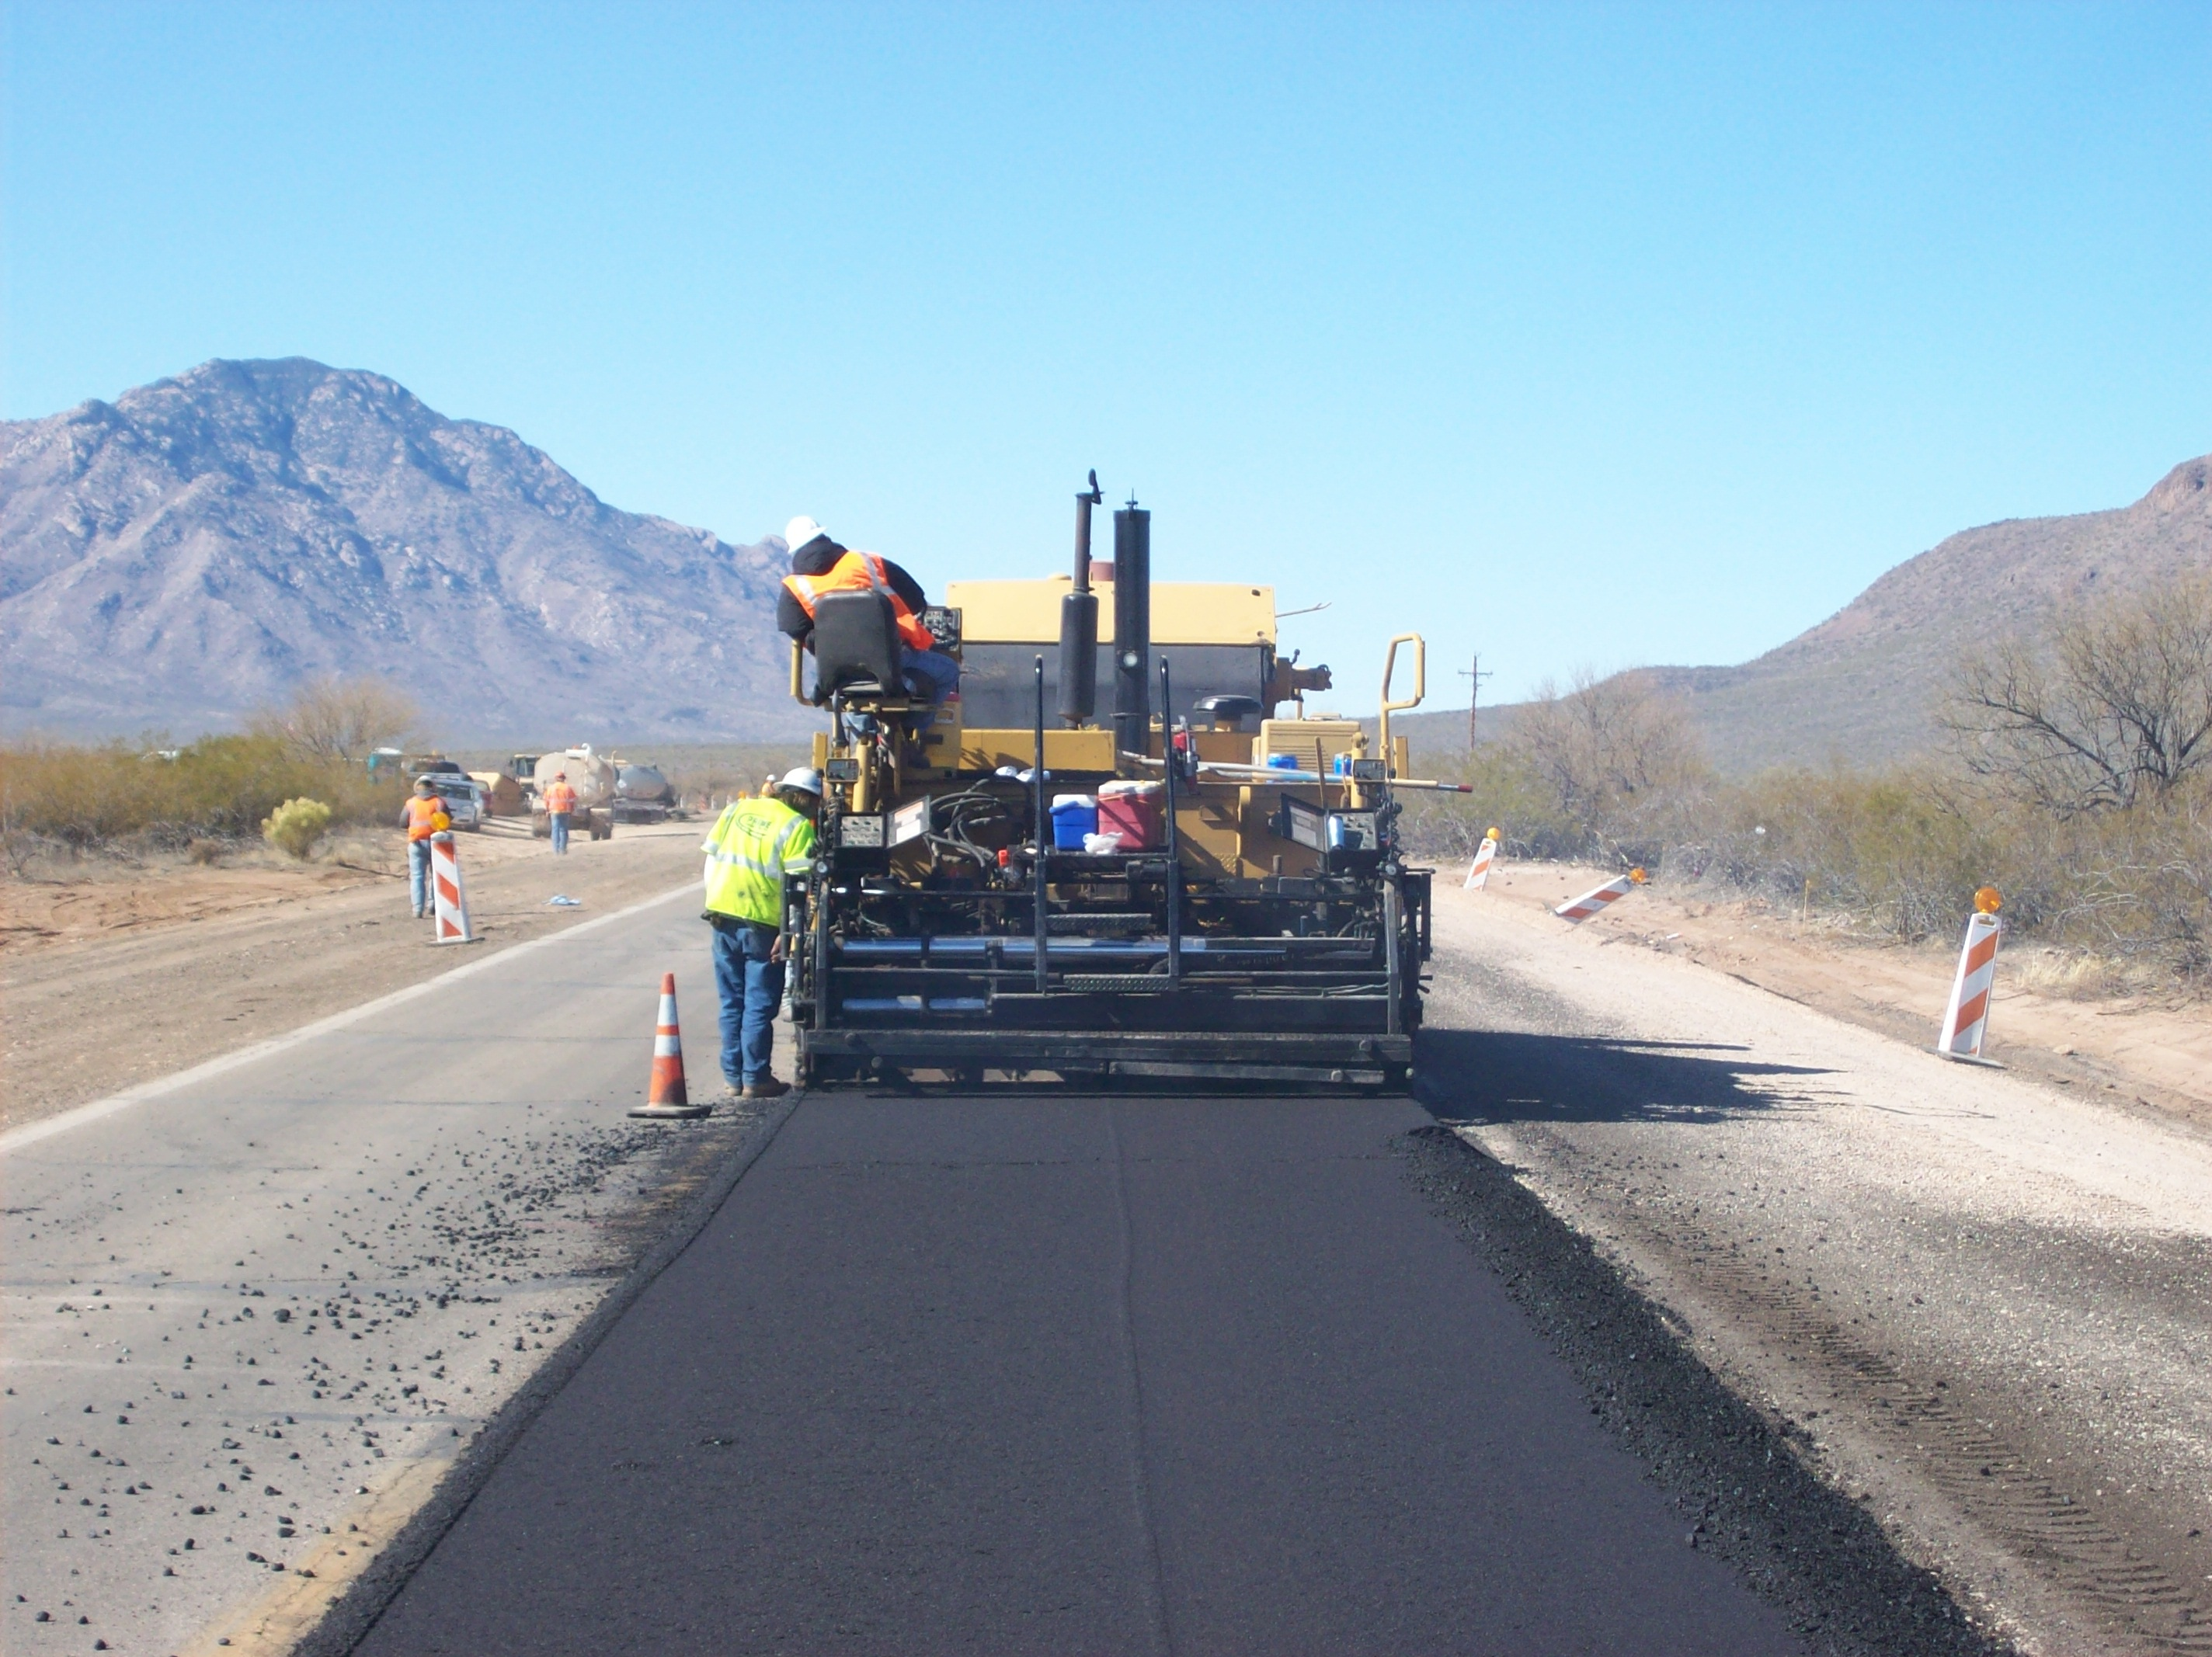 State Route 86 Widening, Robles Junction, Arizona